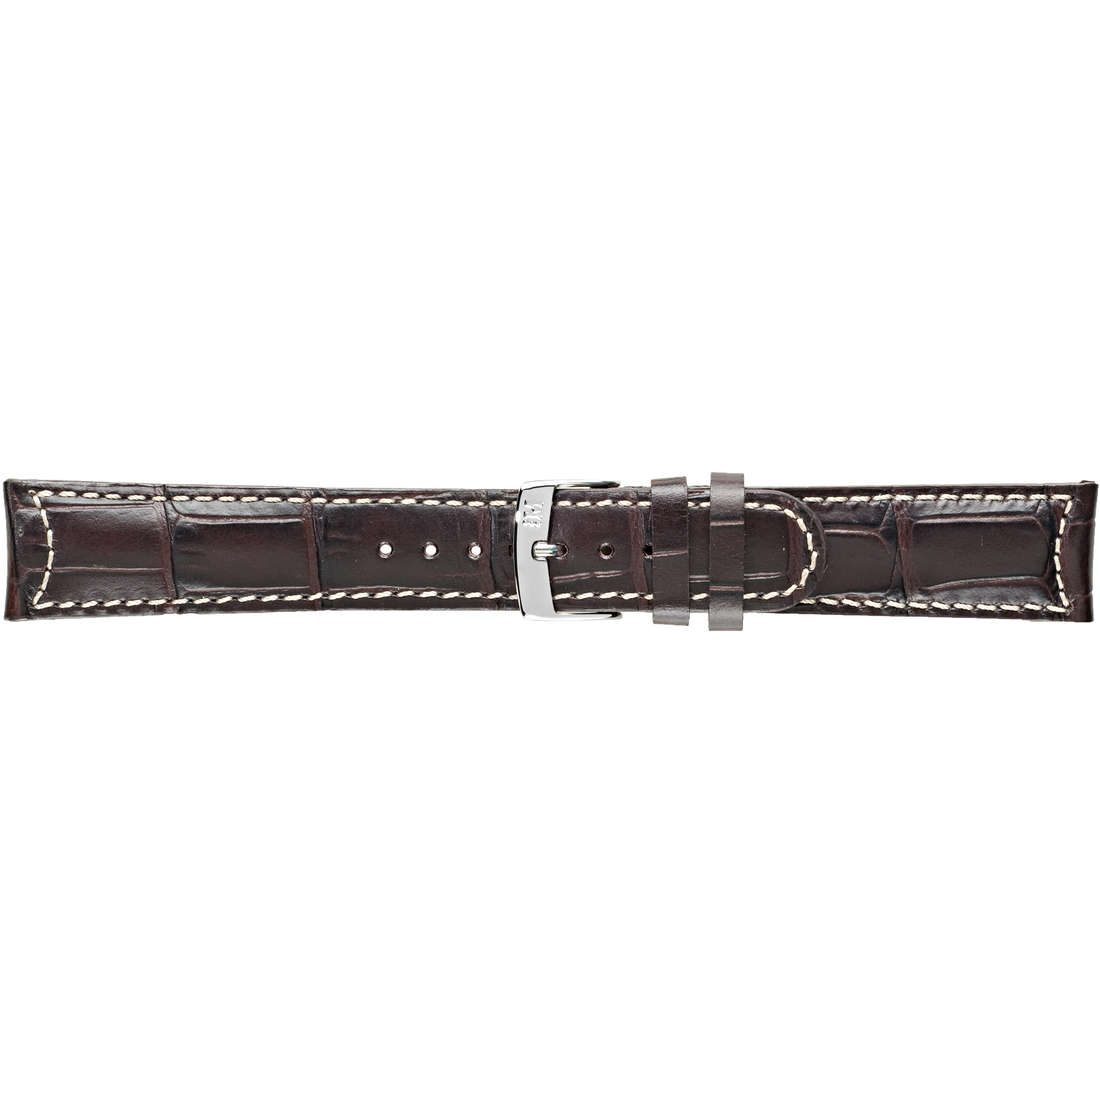 watch watch bands watch straps man Morellato Manufatti A01U3882A59030CR22